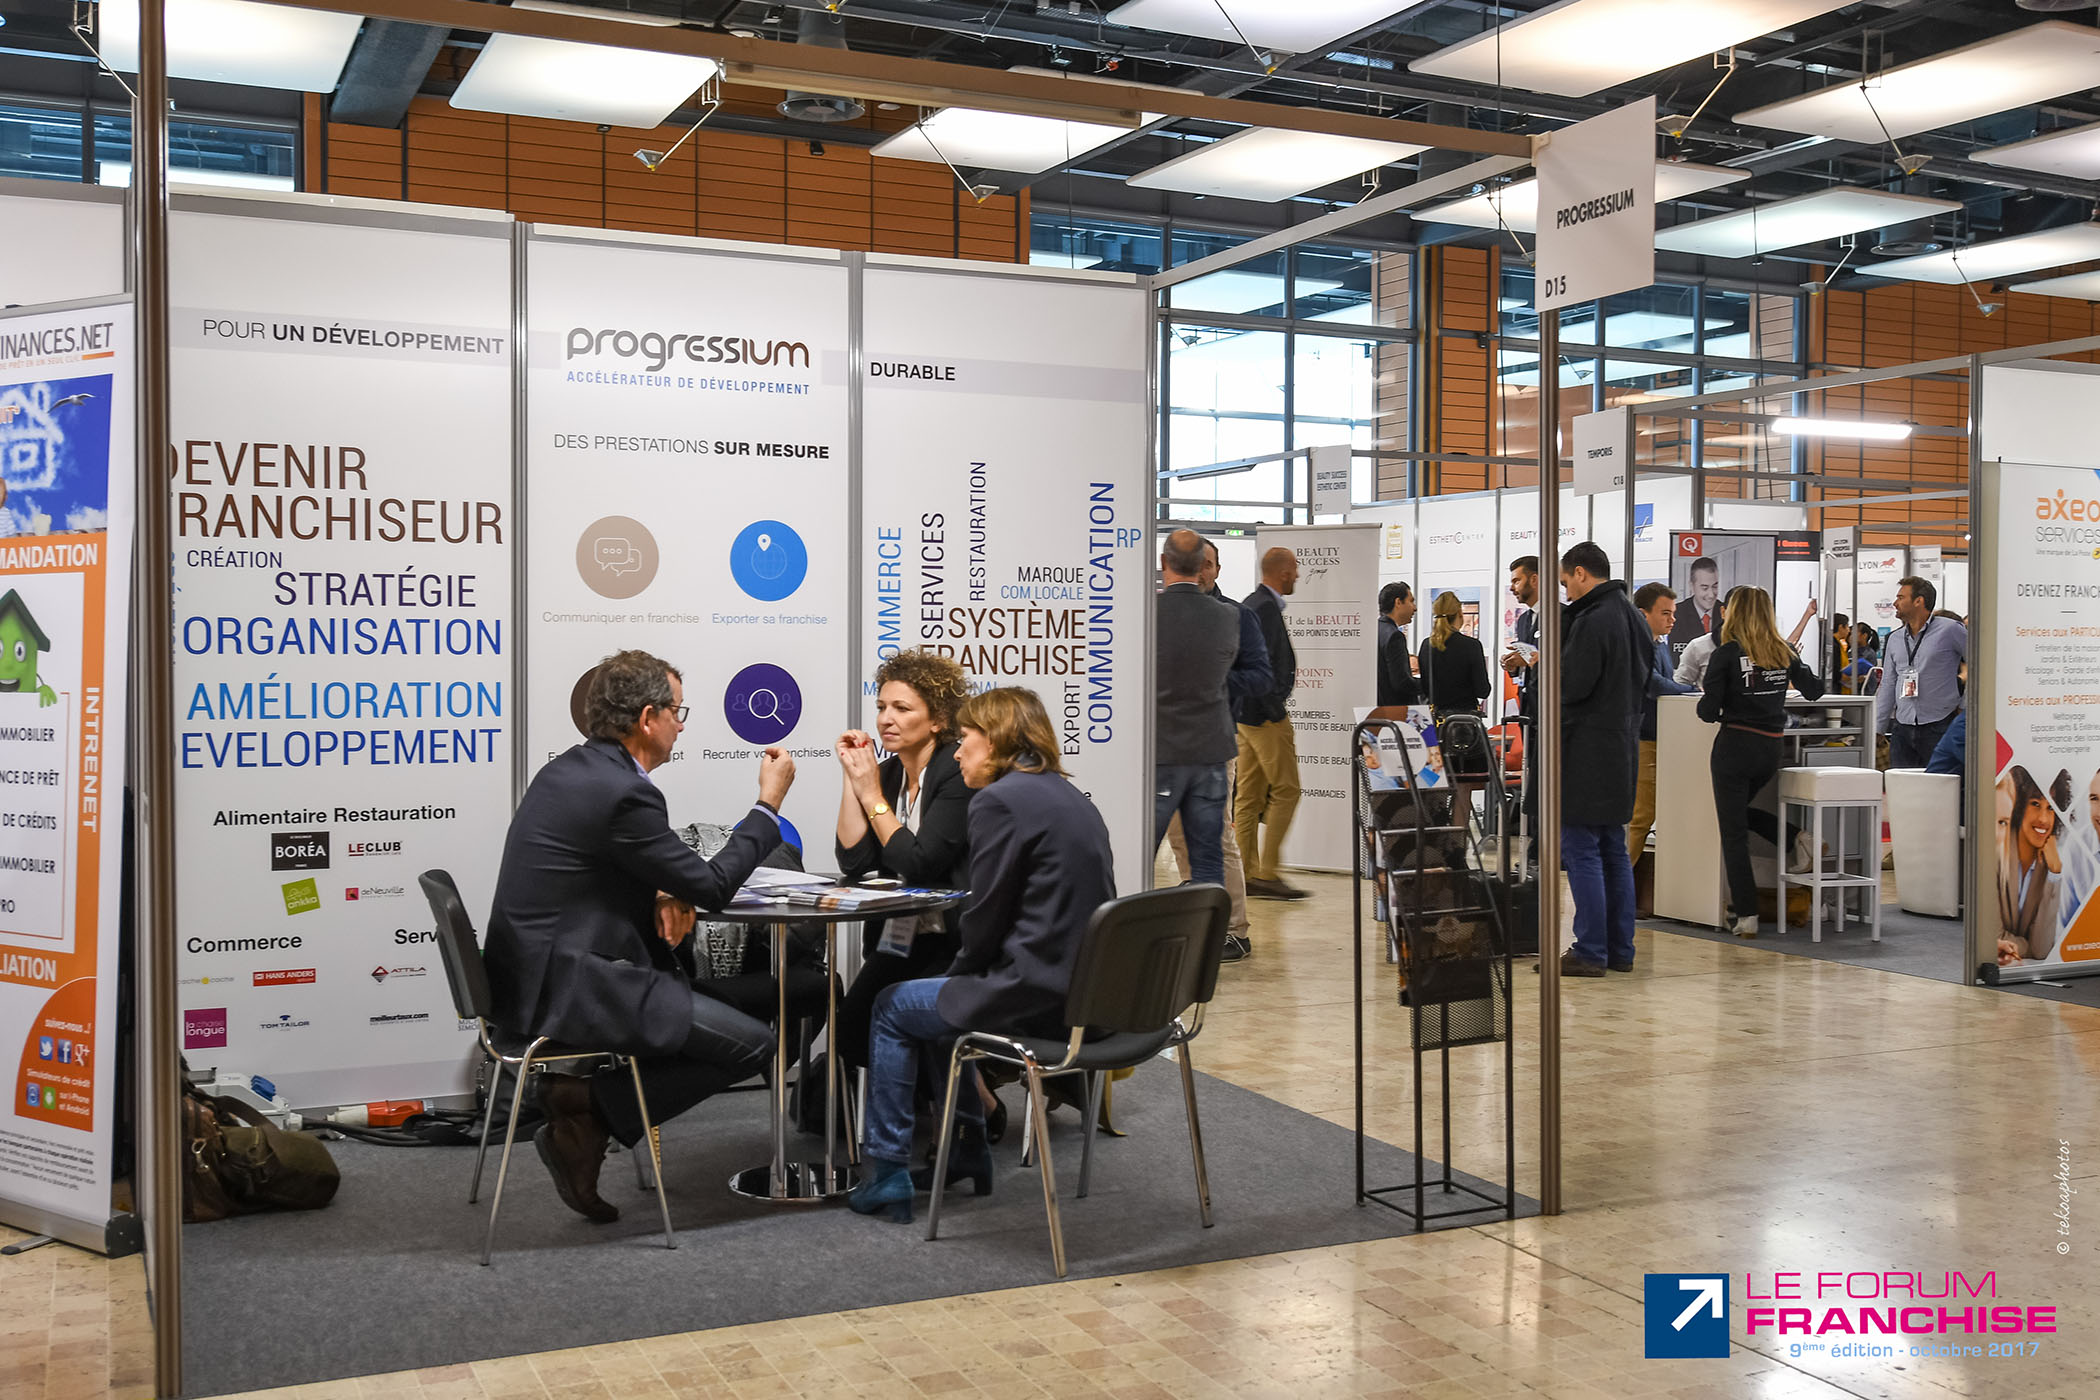 Forum de la franchise 2018 - Progressium